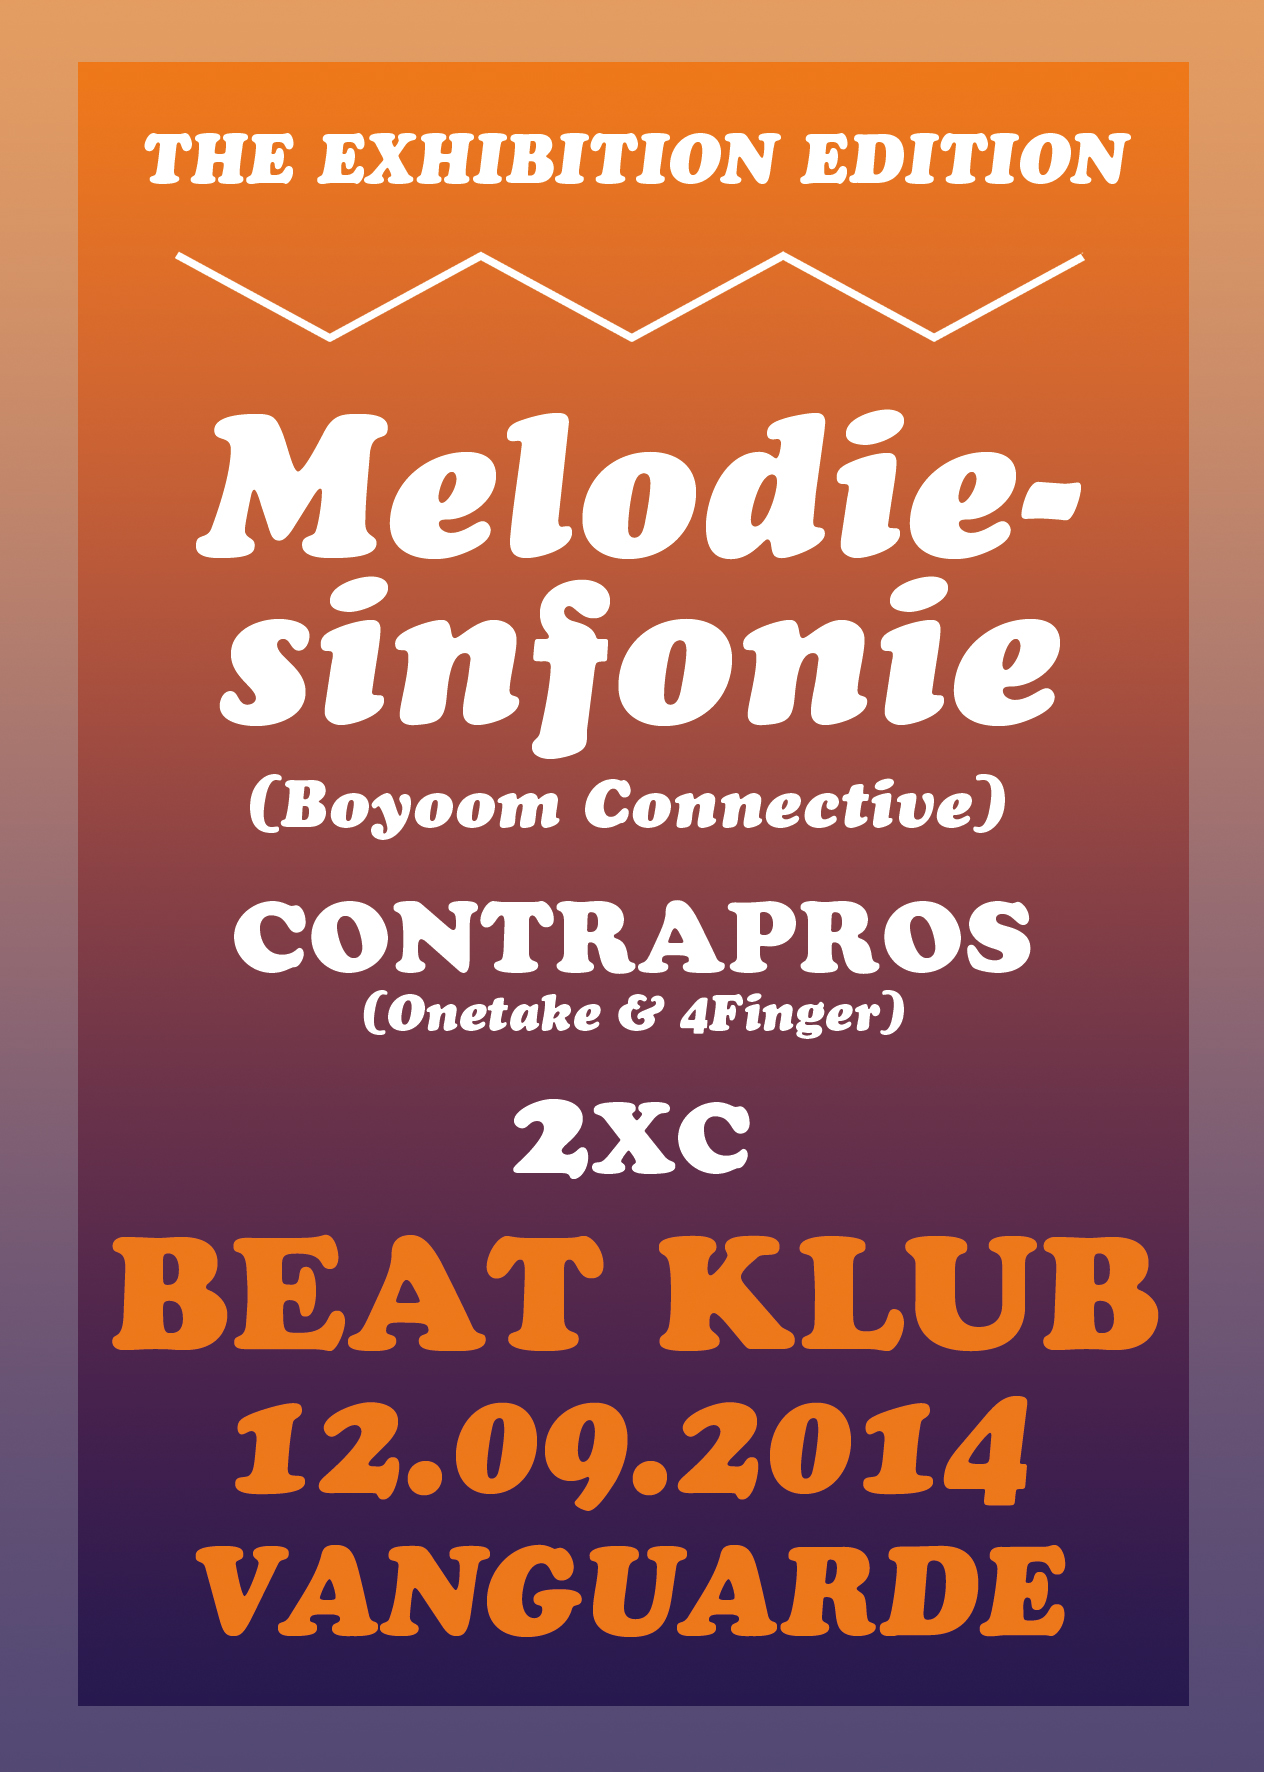 12.09.2014 | BEAT KLUB * SEASON OPENING * EXHIBITION EDITION